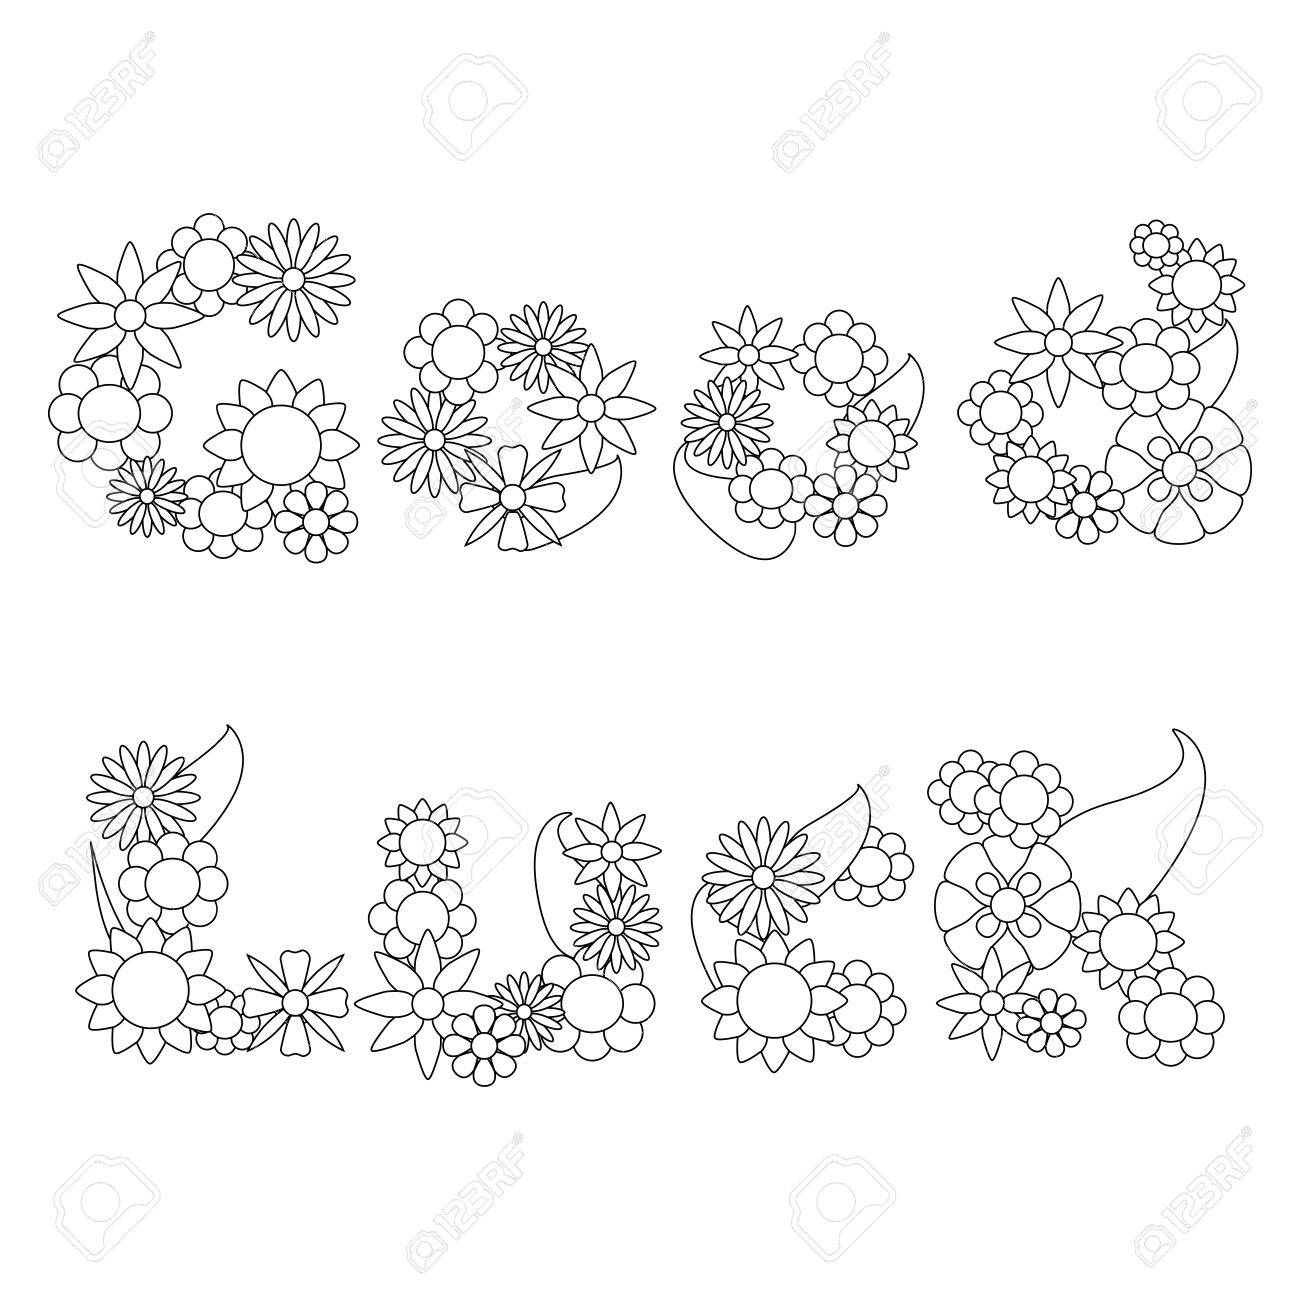 Good Luck Words By Flowers Ornament For Coloring, Words Flower ...